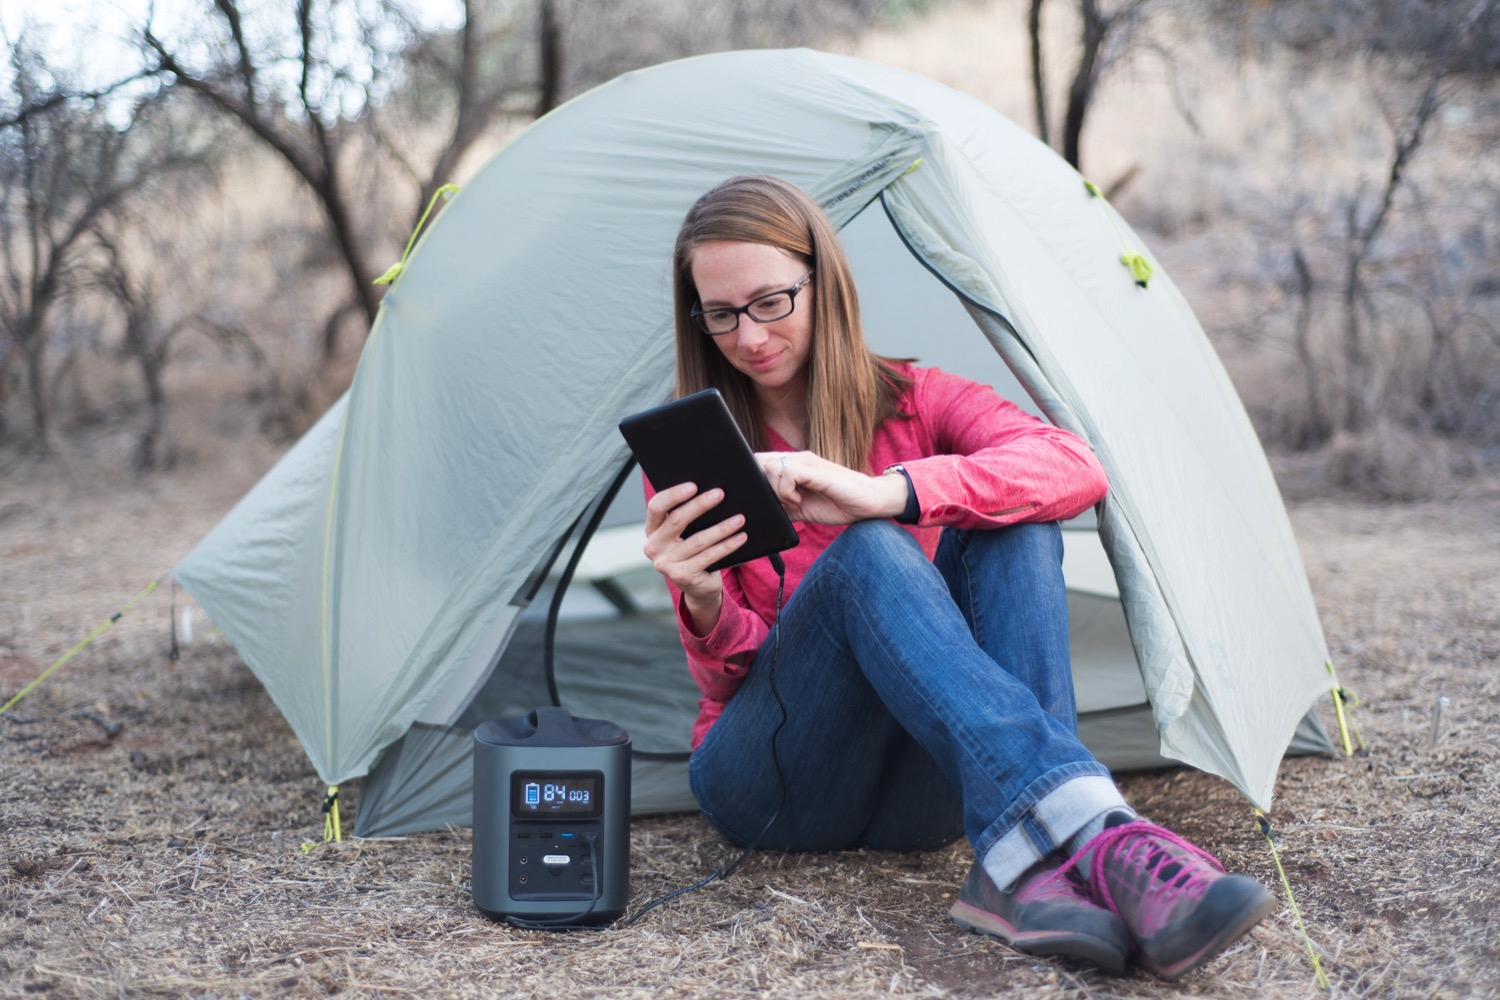 Batteries and Backups: How to Shoot Off the Grid - battery in use at campsite